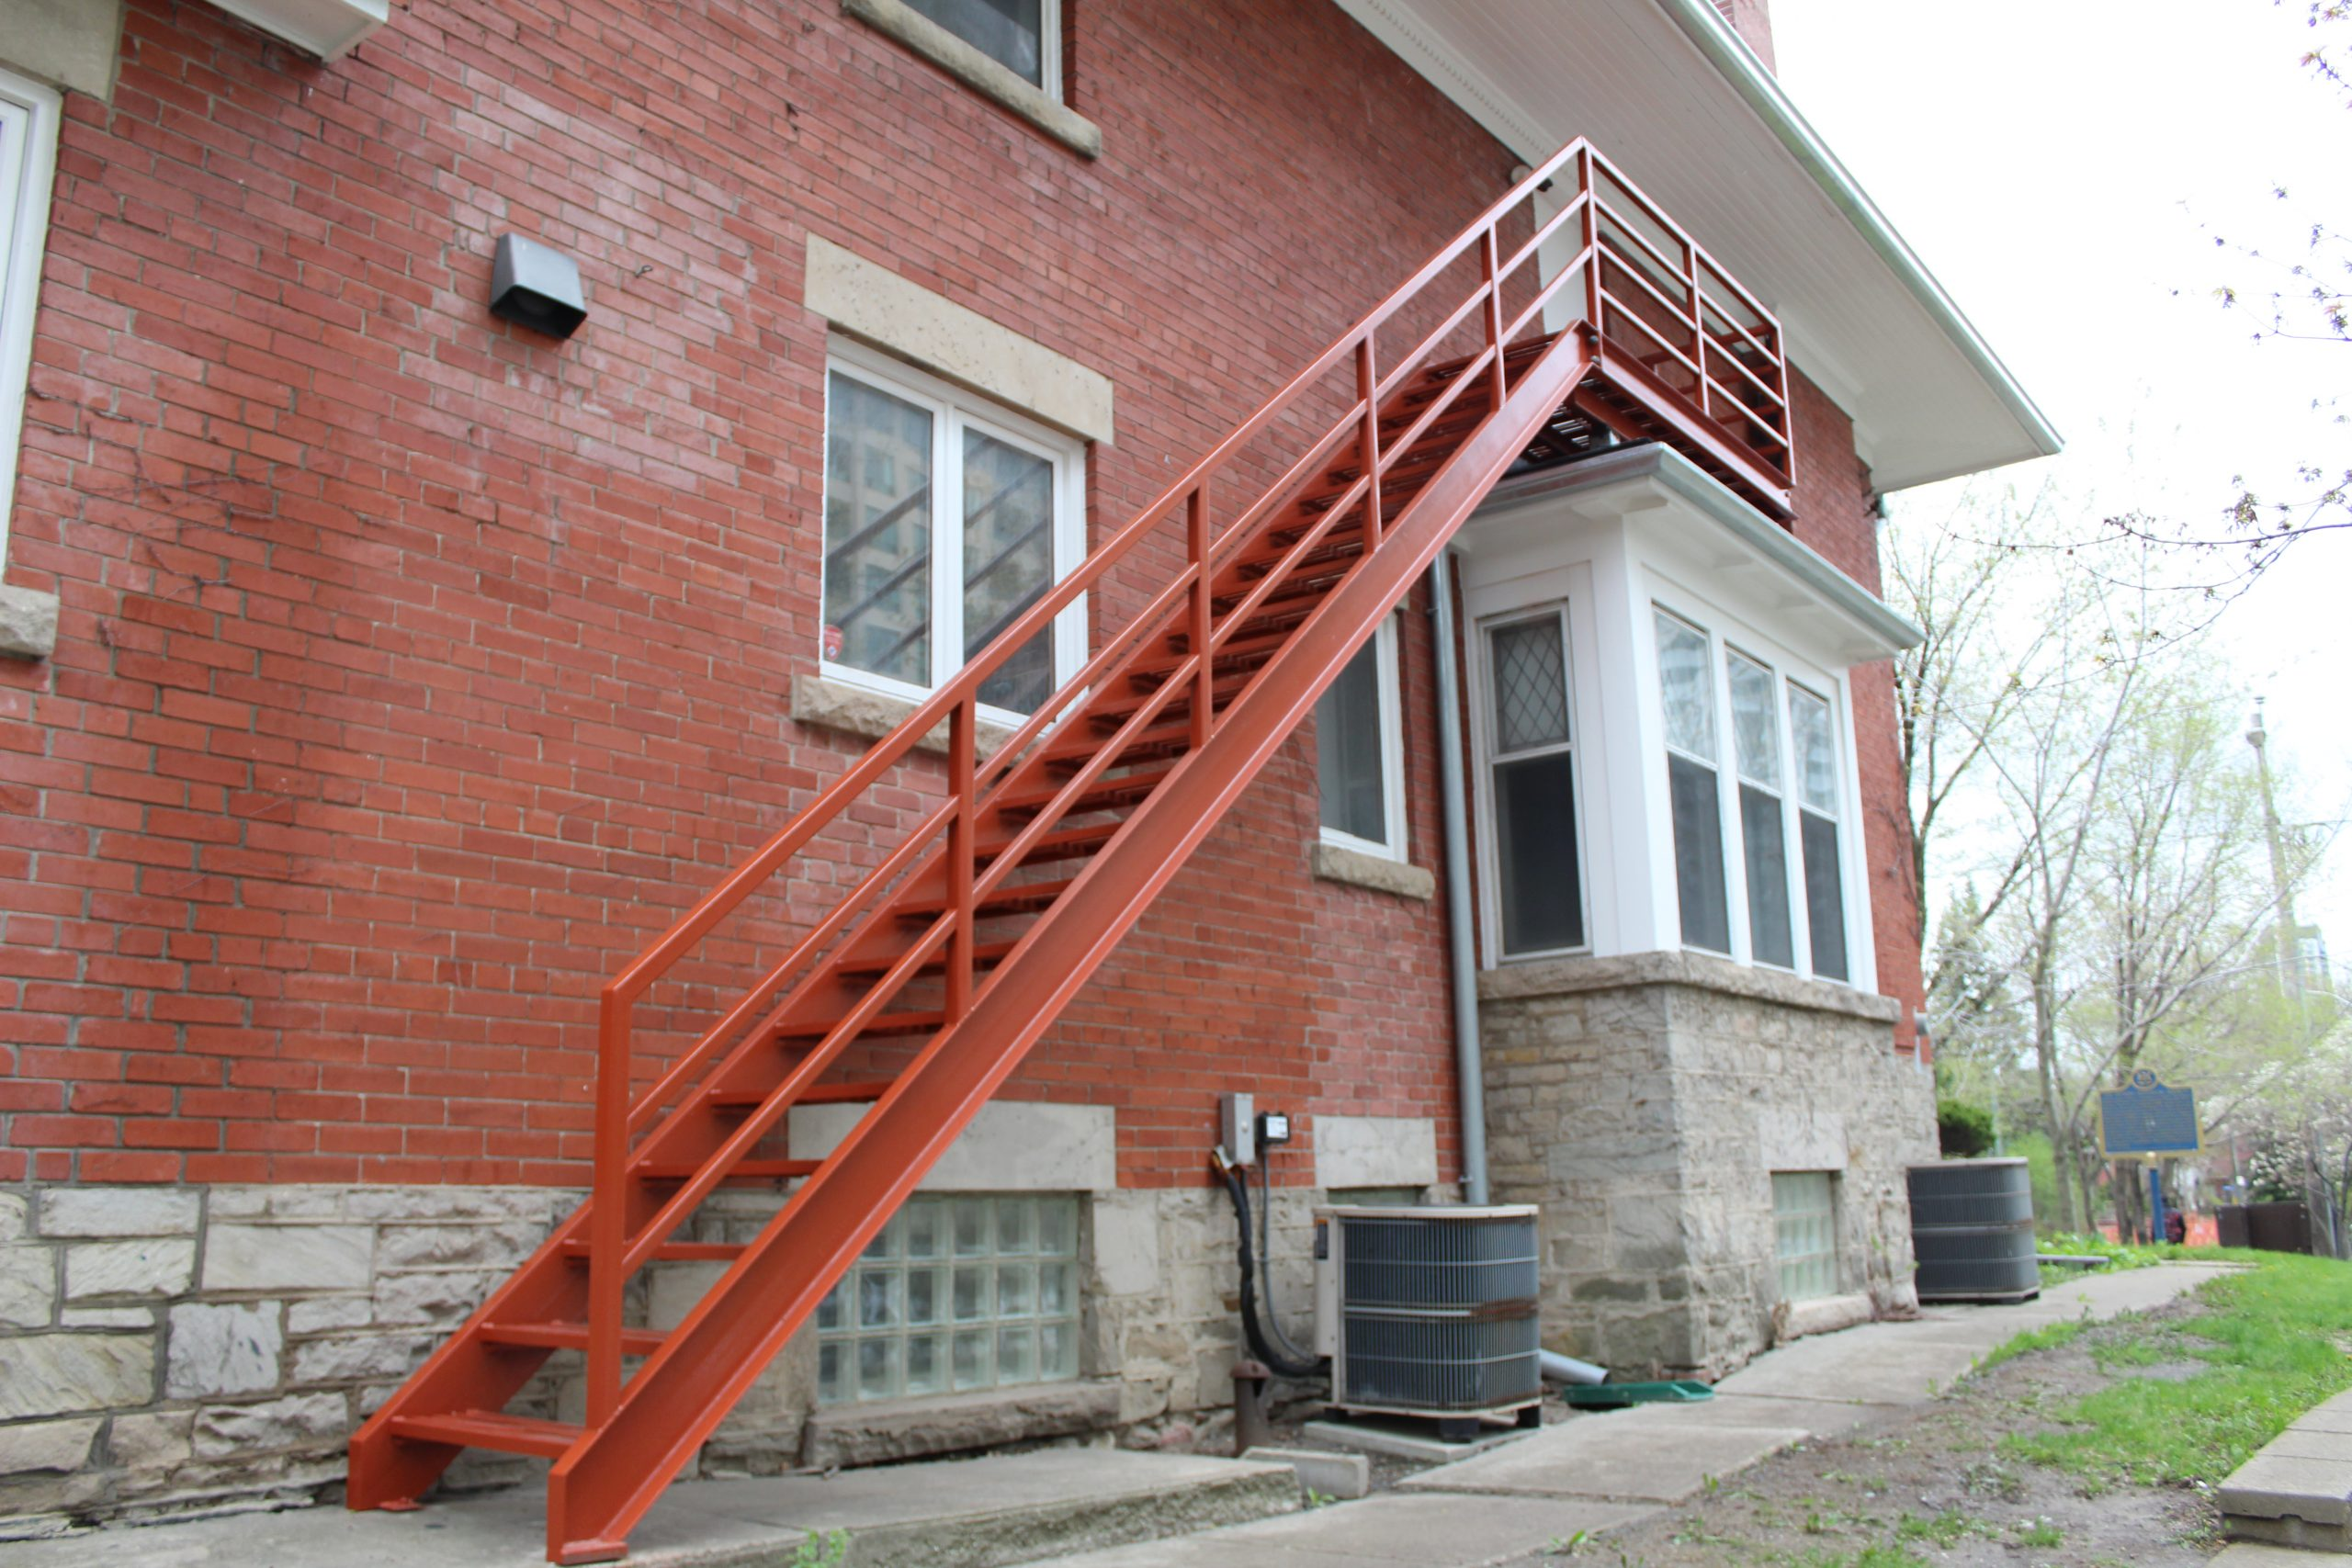 Fig. 48. Fire Escape Complete